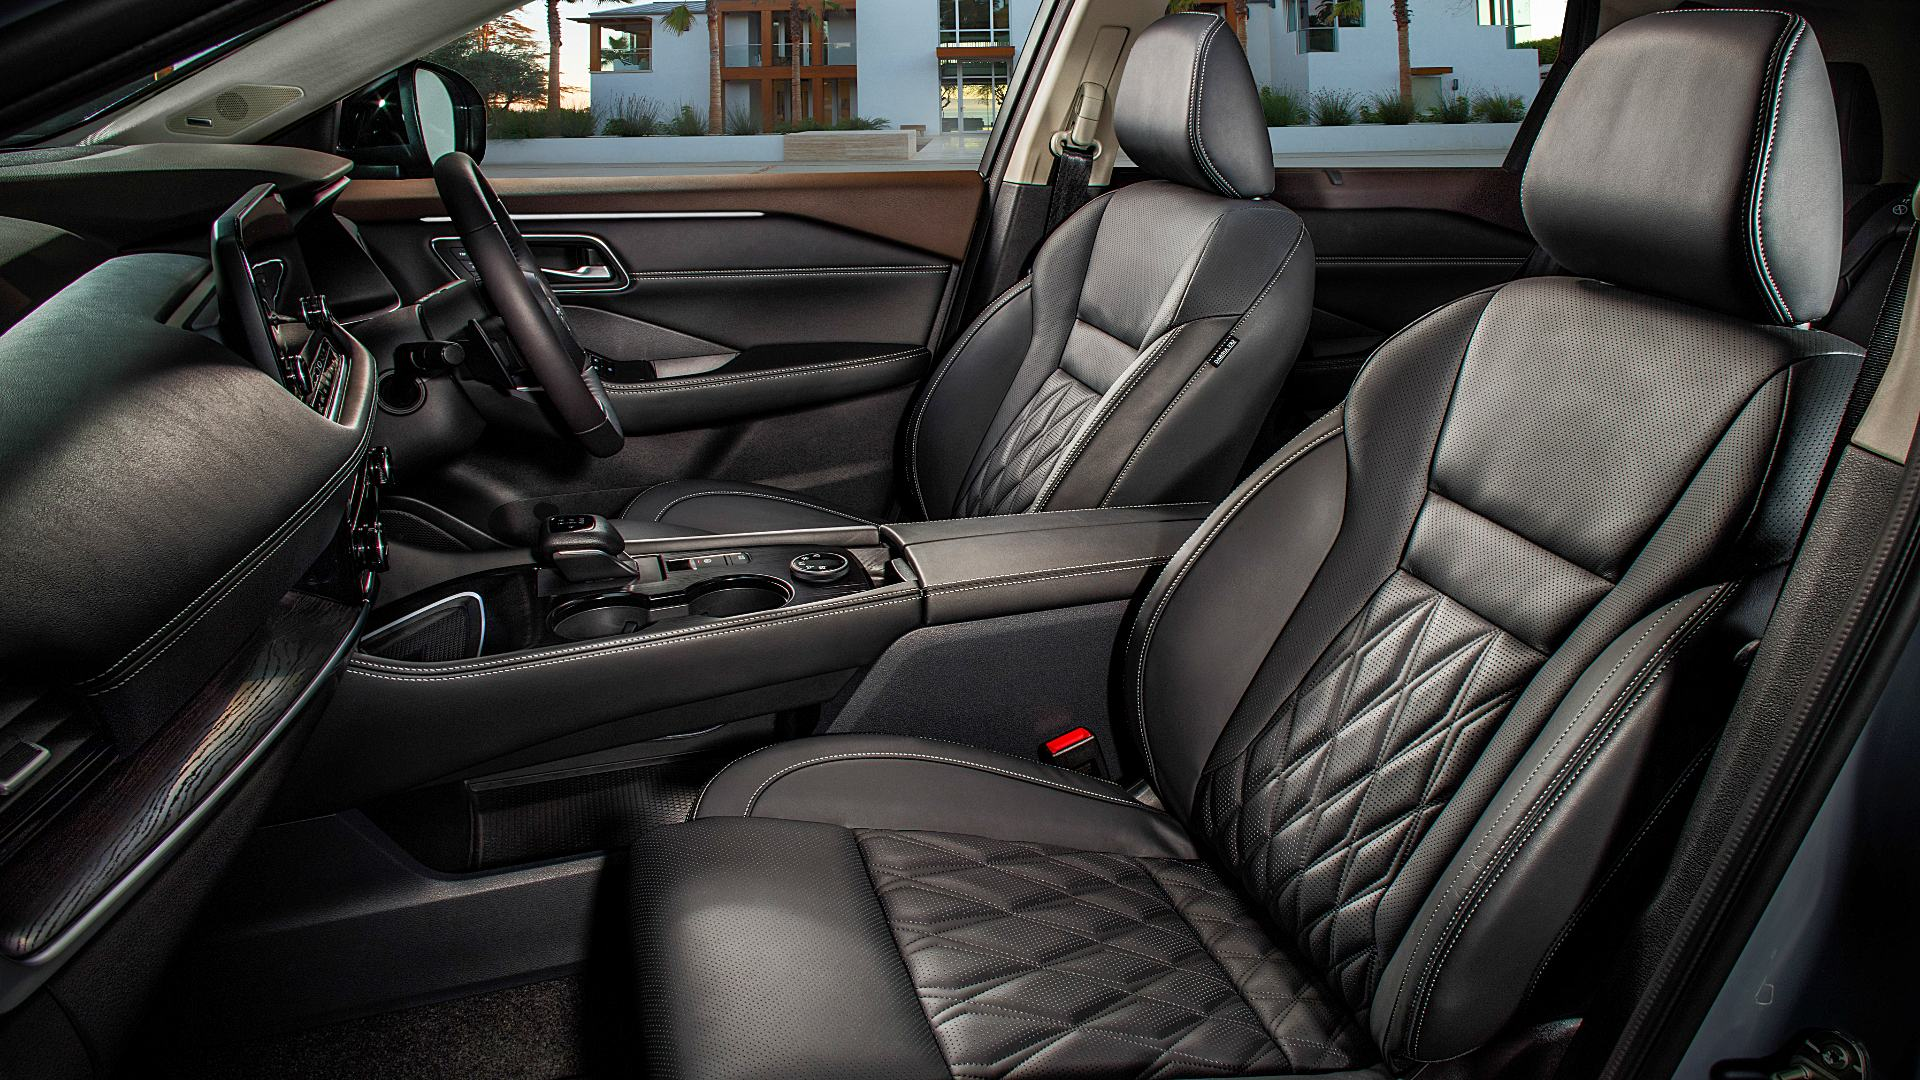 2021 Nissan Rogue Interior Pictures